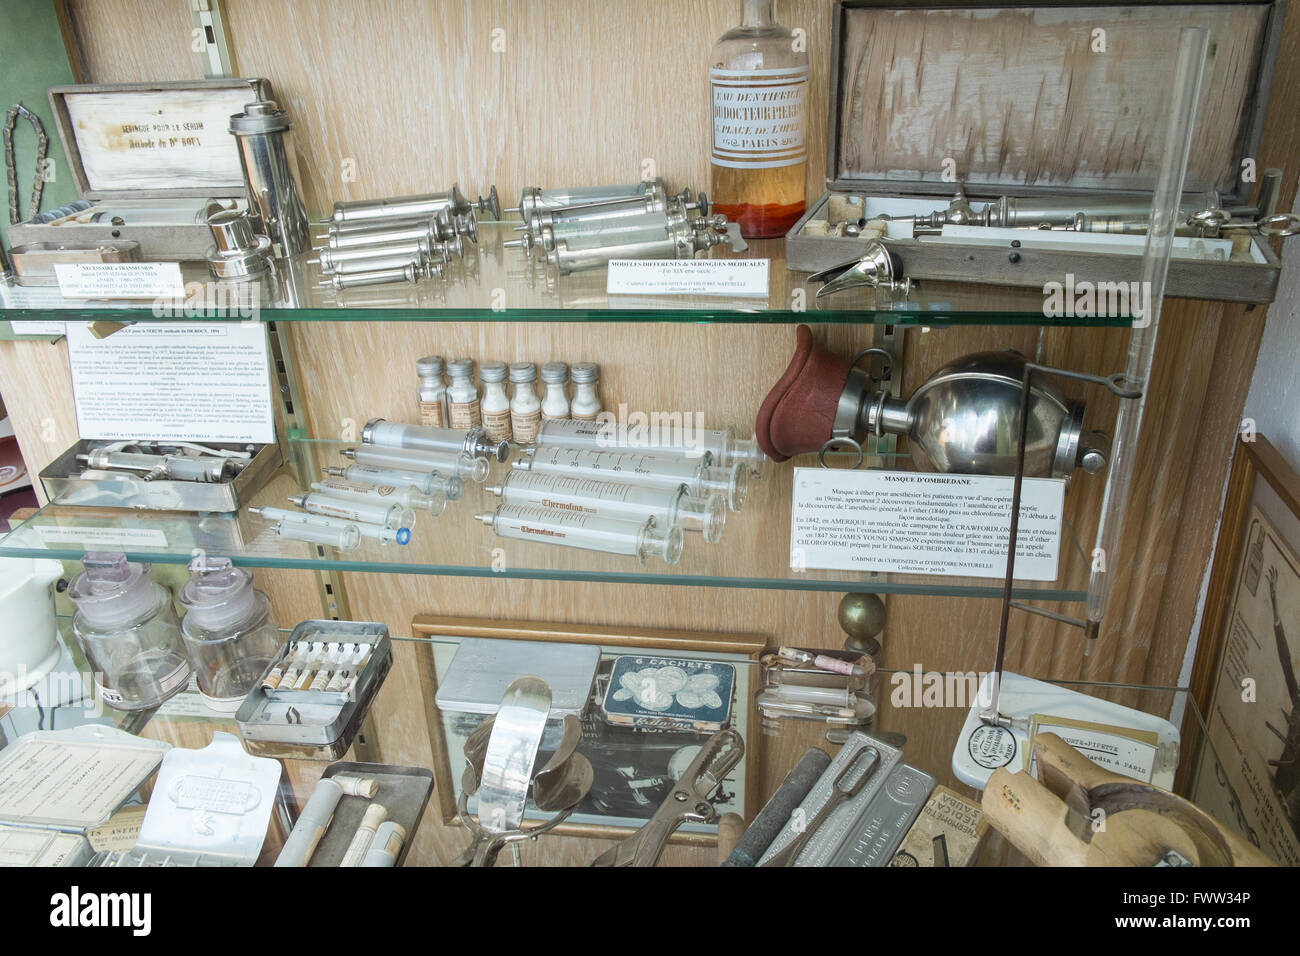 Antique surgical instruments,tools on display in window at pharmacy